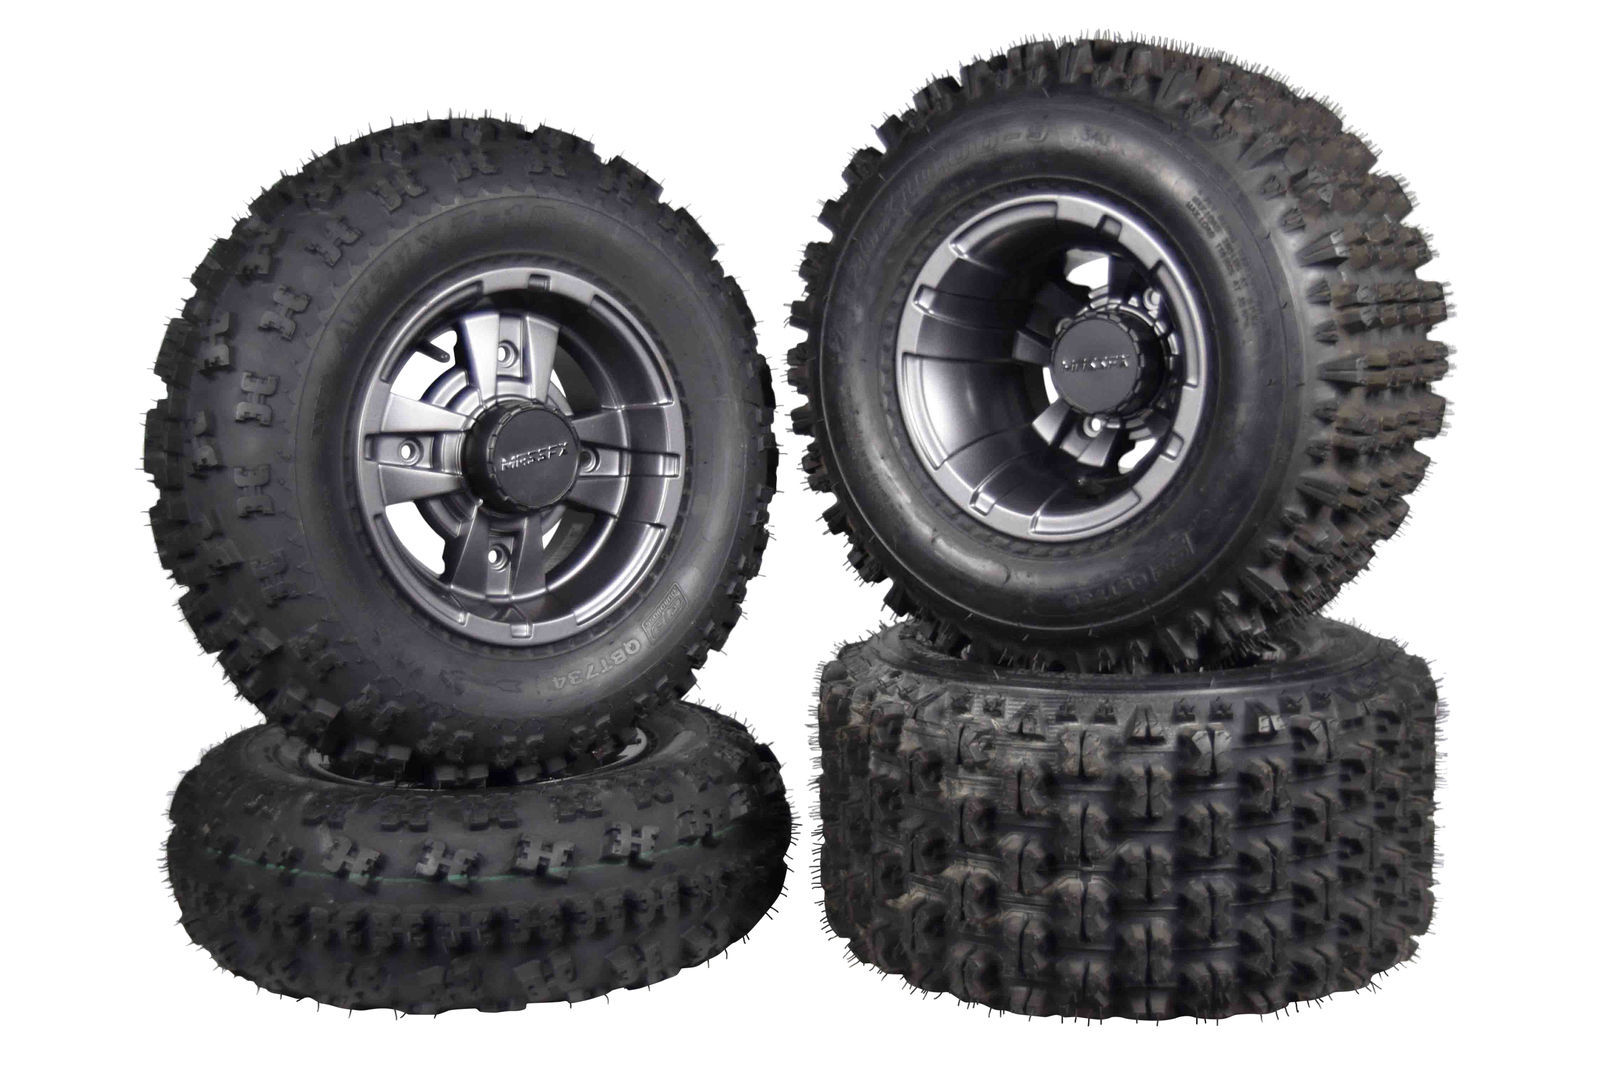 21x7-10 20x10-9 All 4 Tires Yamaha Raptor Warrior MASSFX Front and Rear